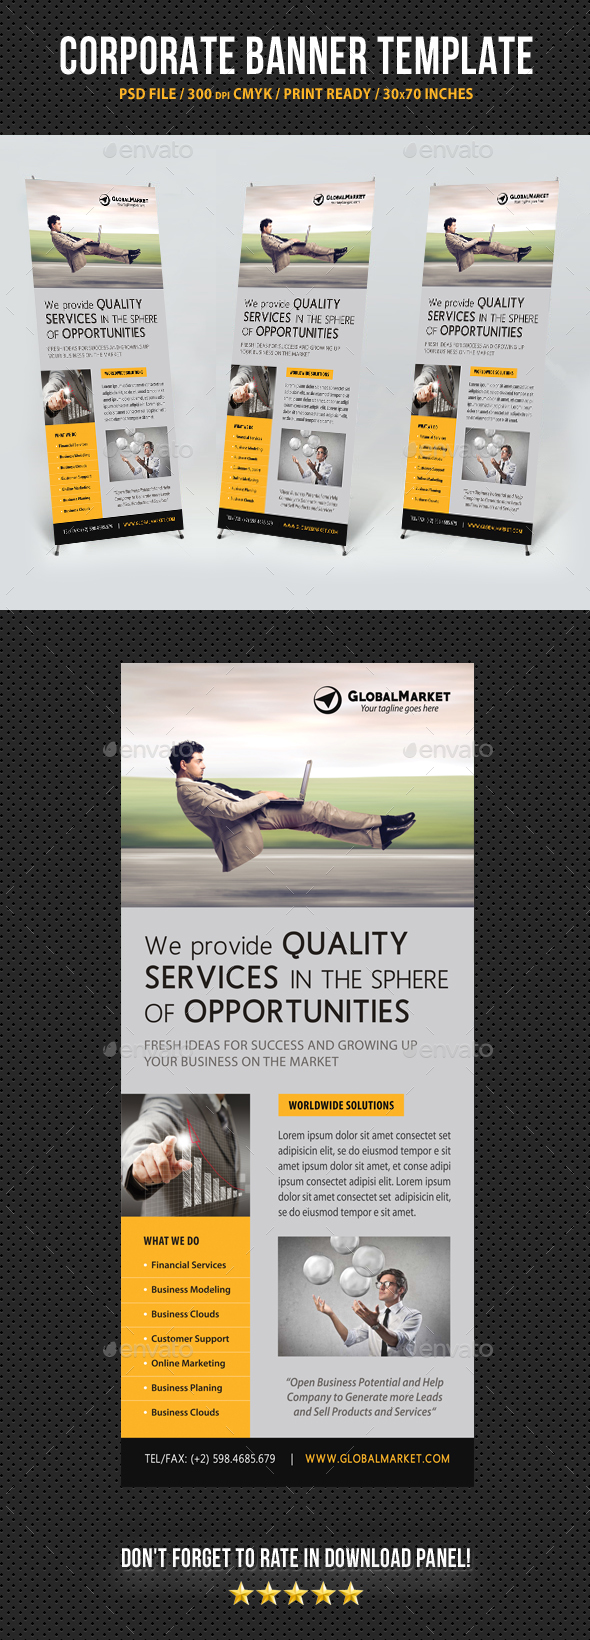 Corporate Business Banner Template V7 - Signage Print Templates